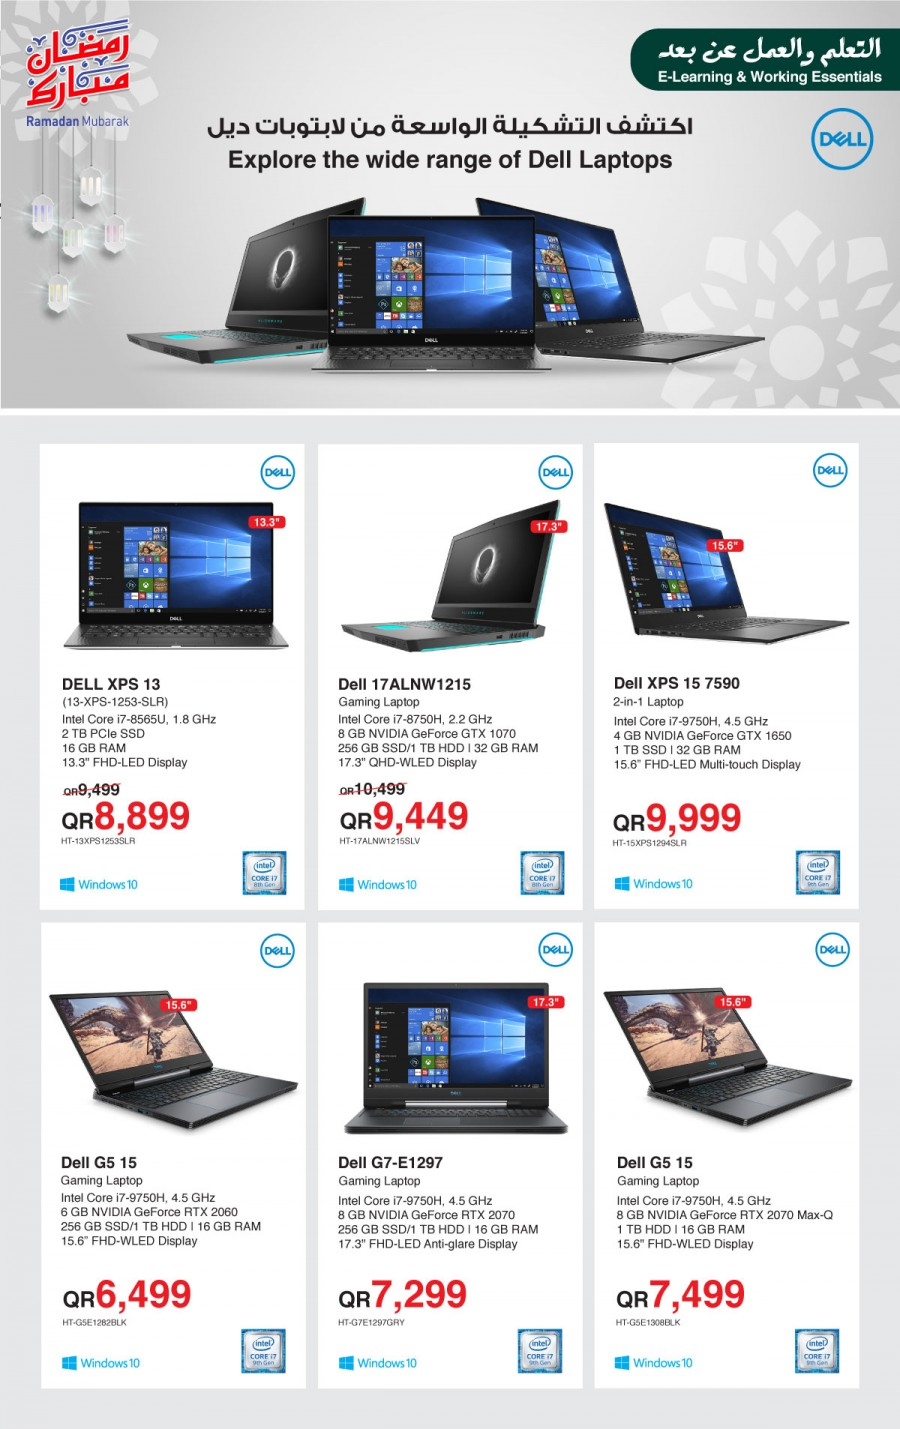 Jarir Bookstore Qatar Explore Wide Range Of Dell Laptops